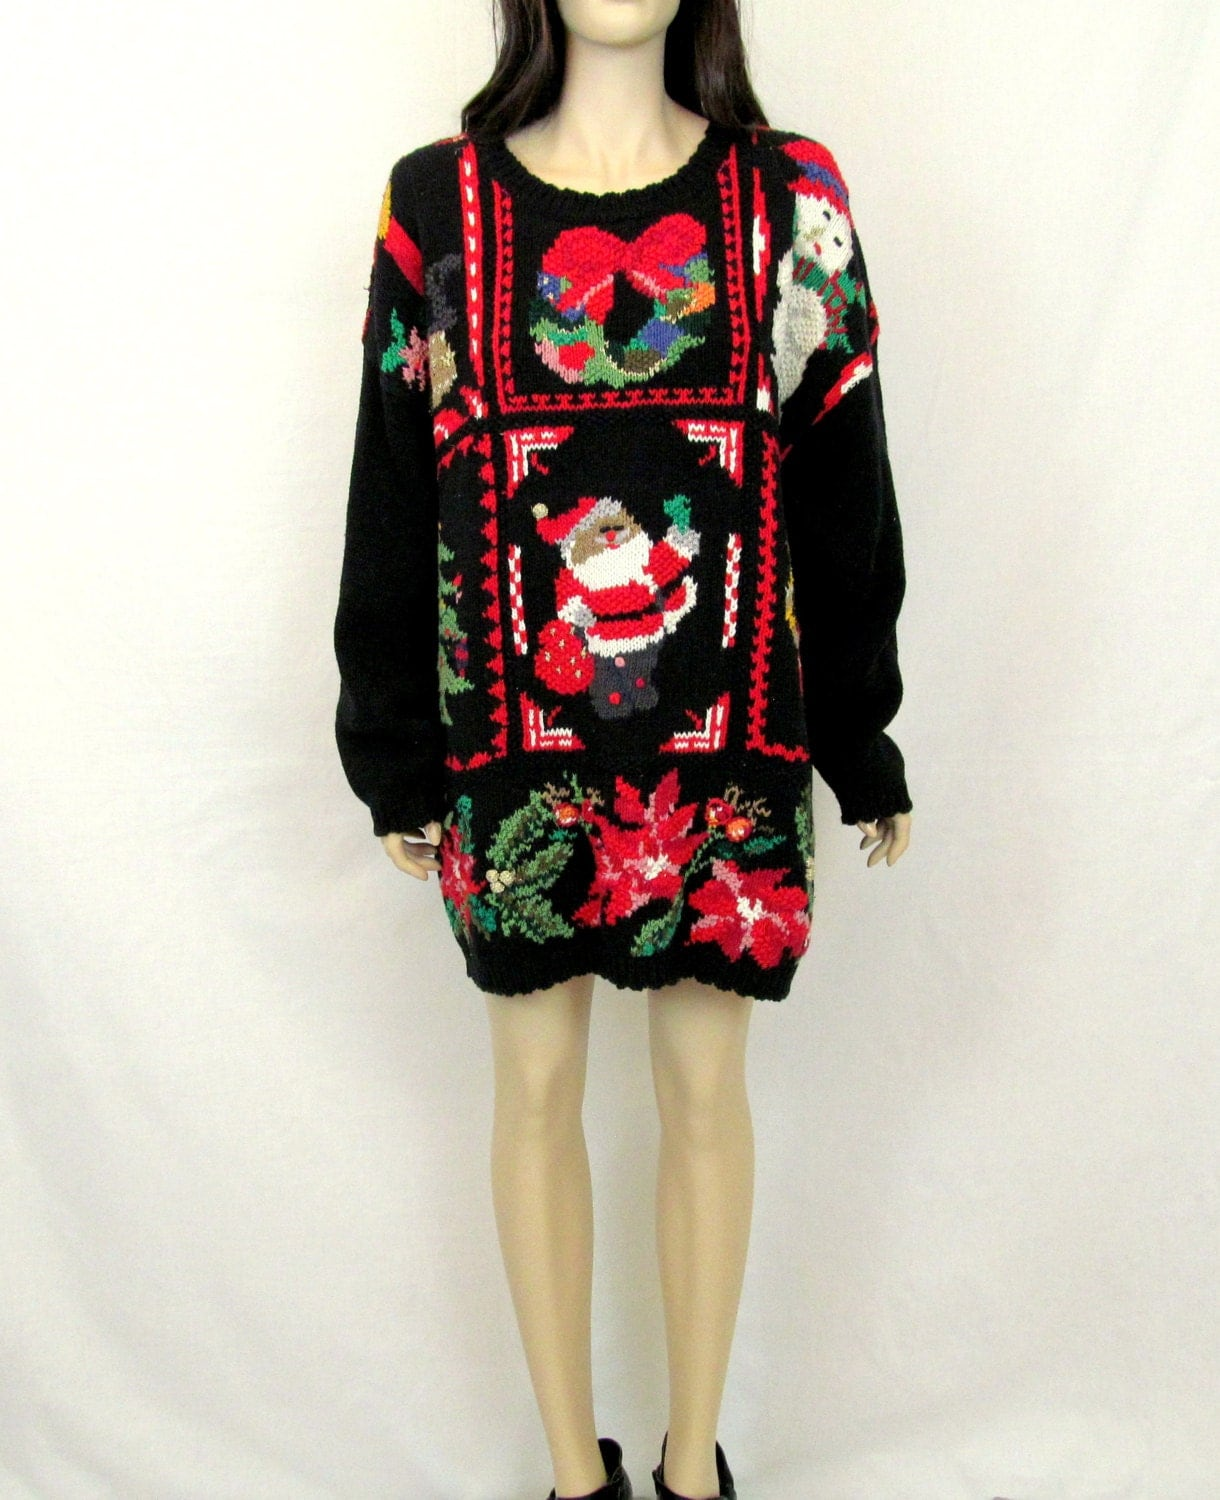 Christmas Sweater Ugly Christmas Sweater Hipster Christmas Sweater